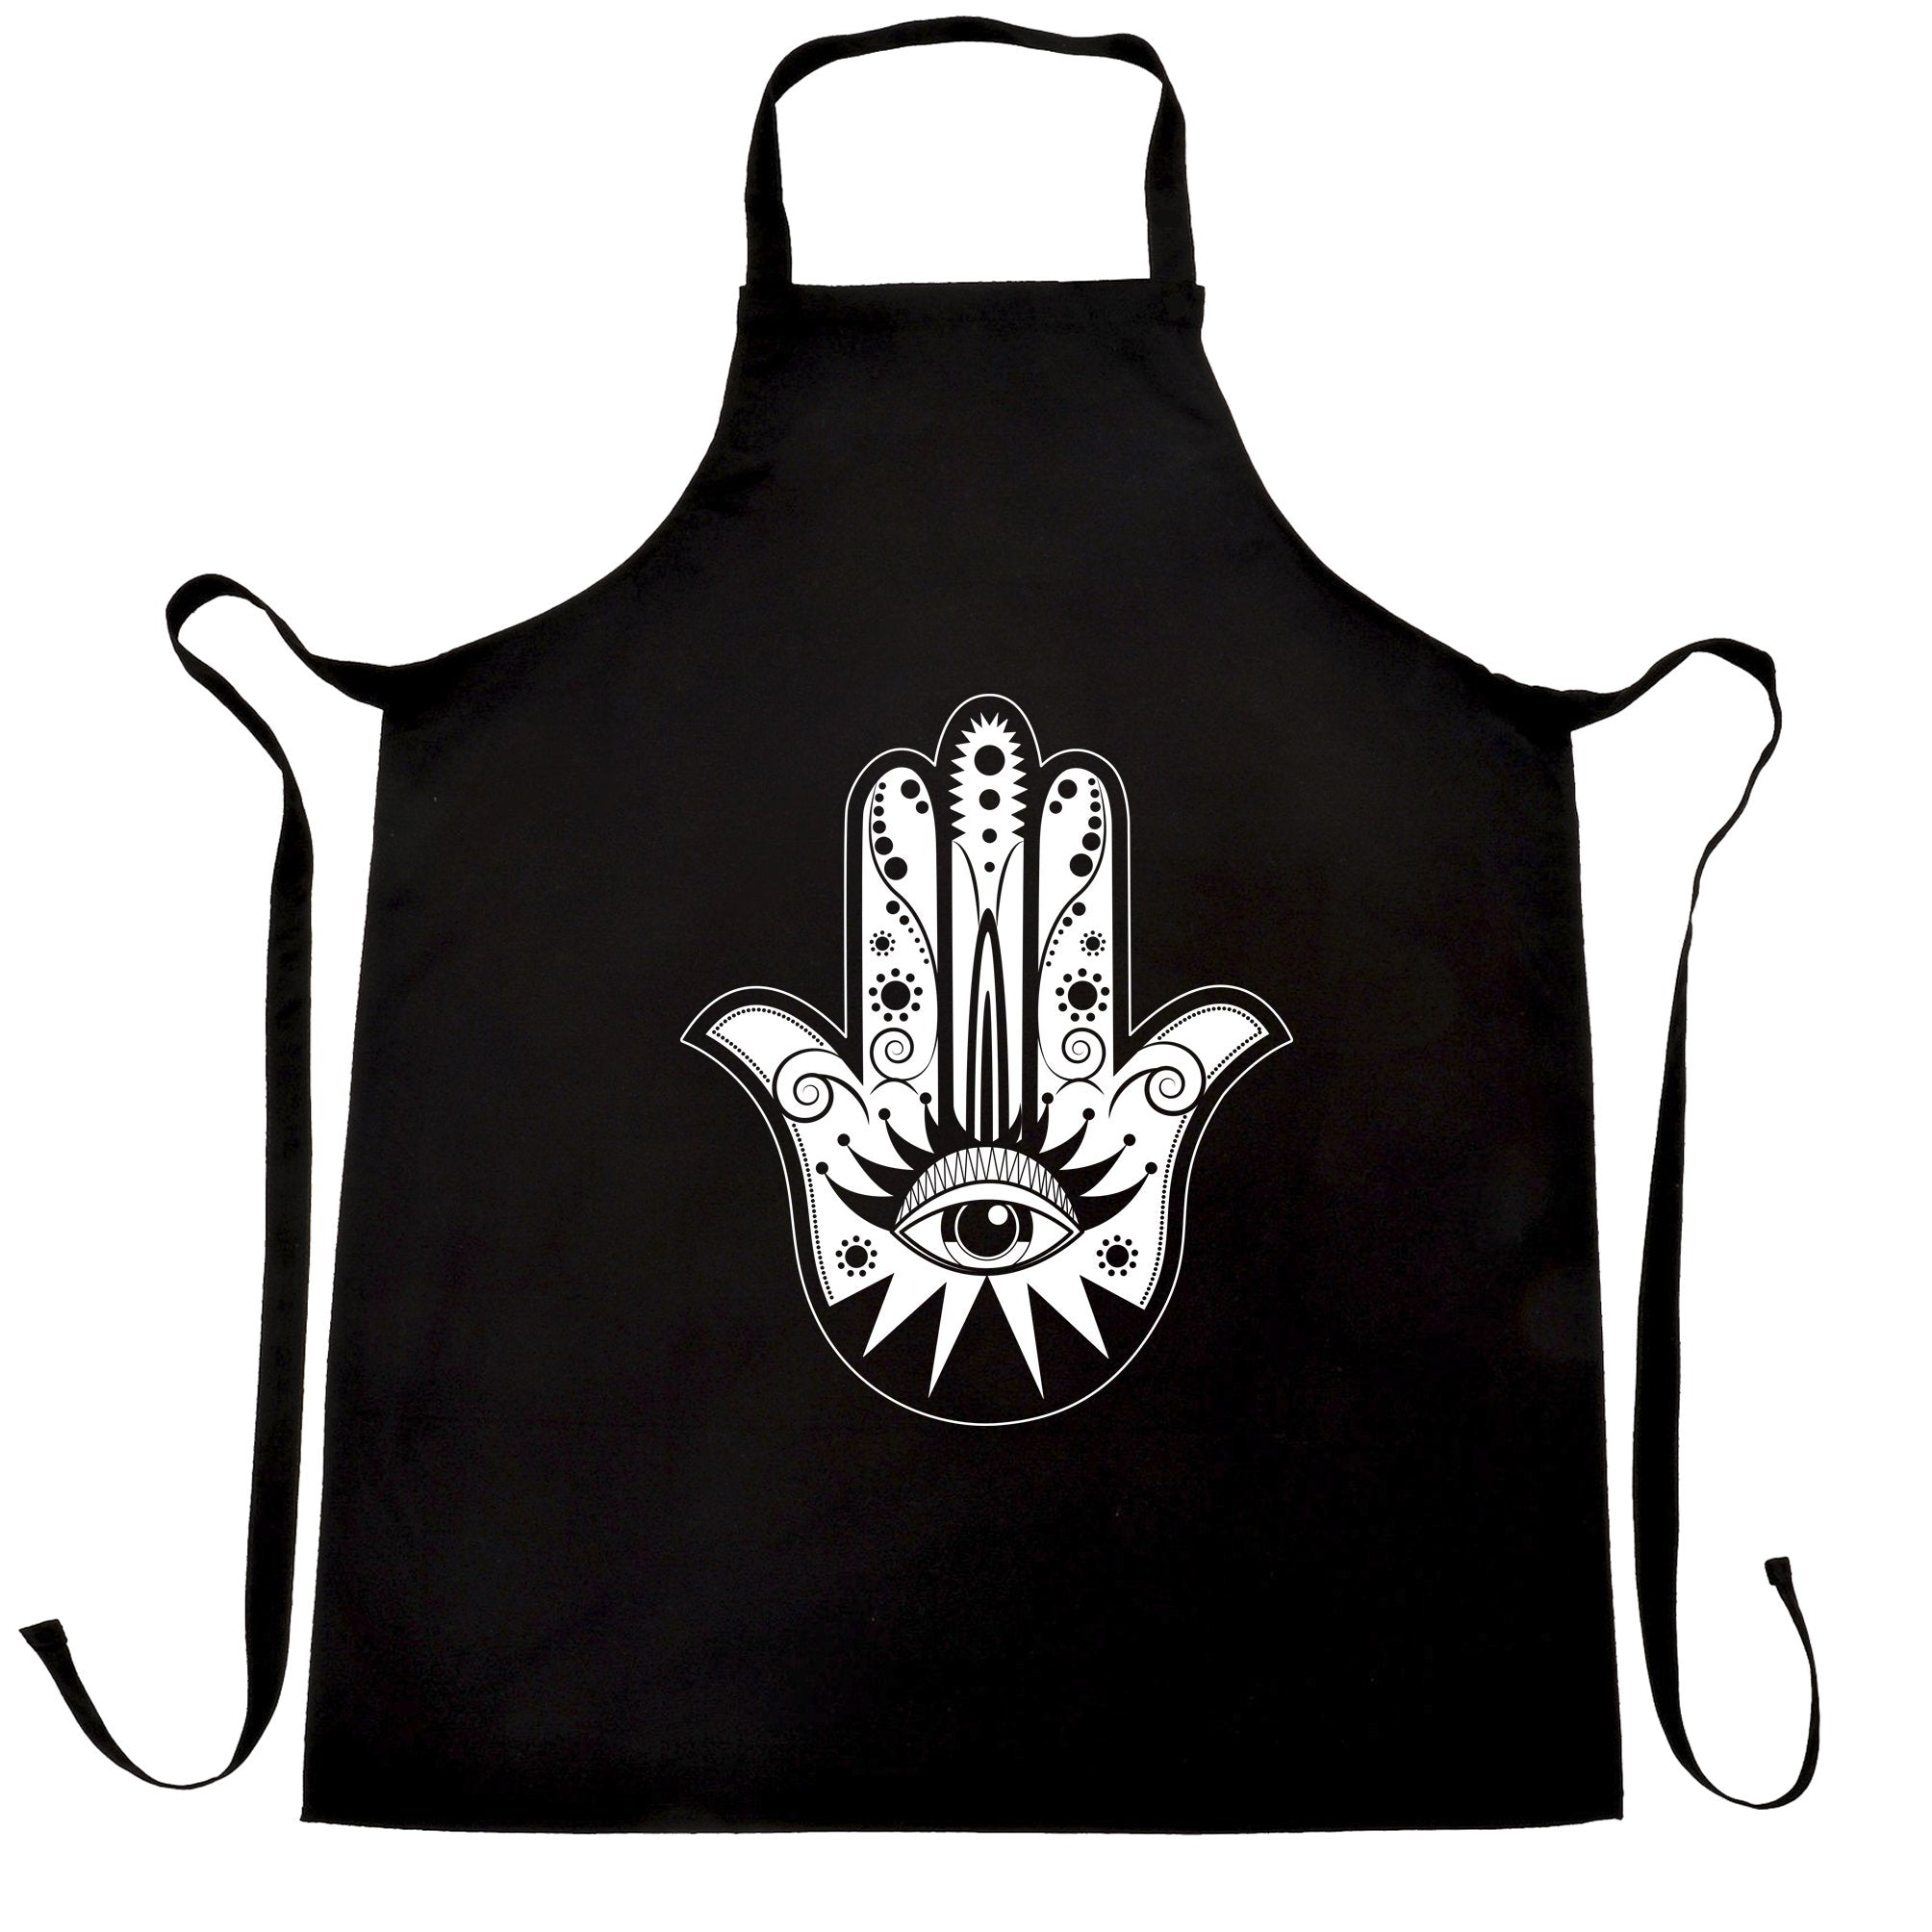 Traditional Art Chef's Apron Hamsa Hand Graphic